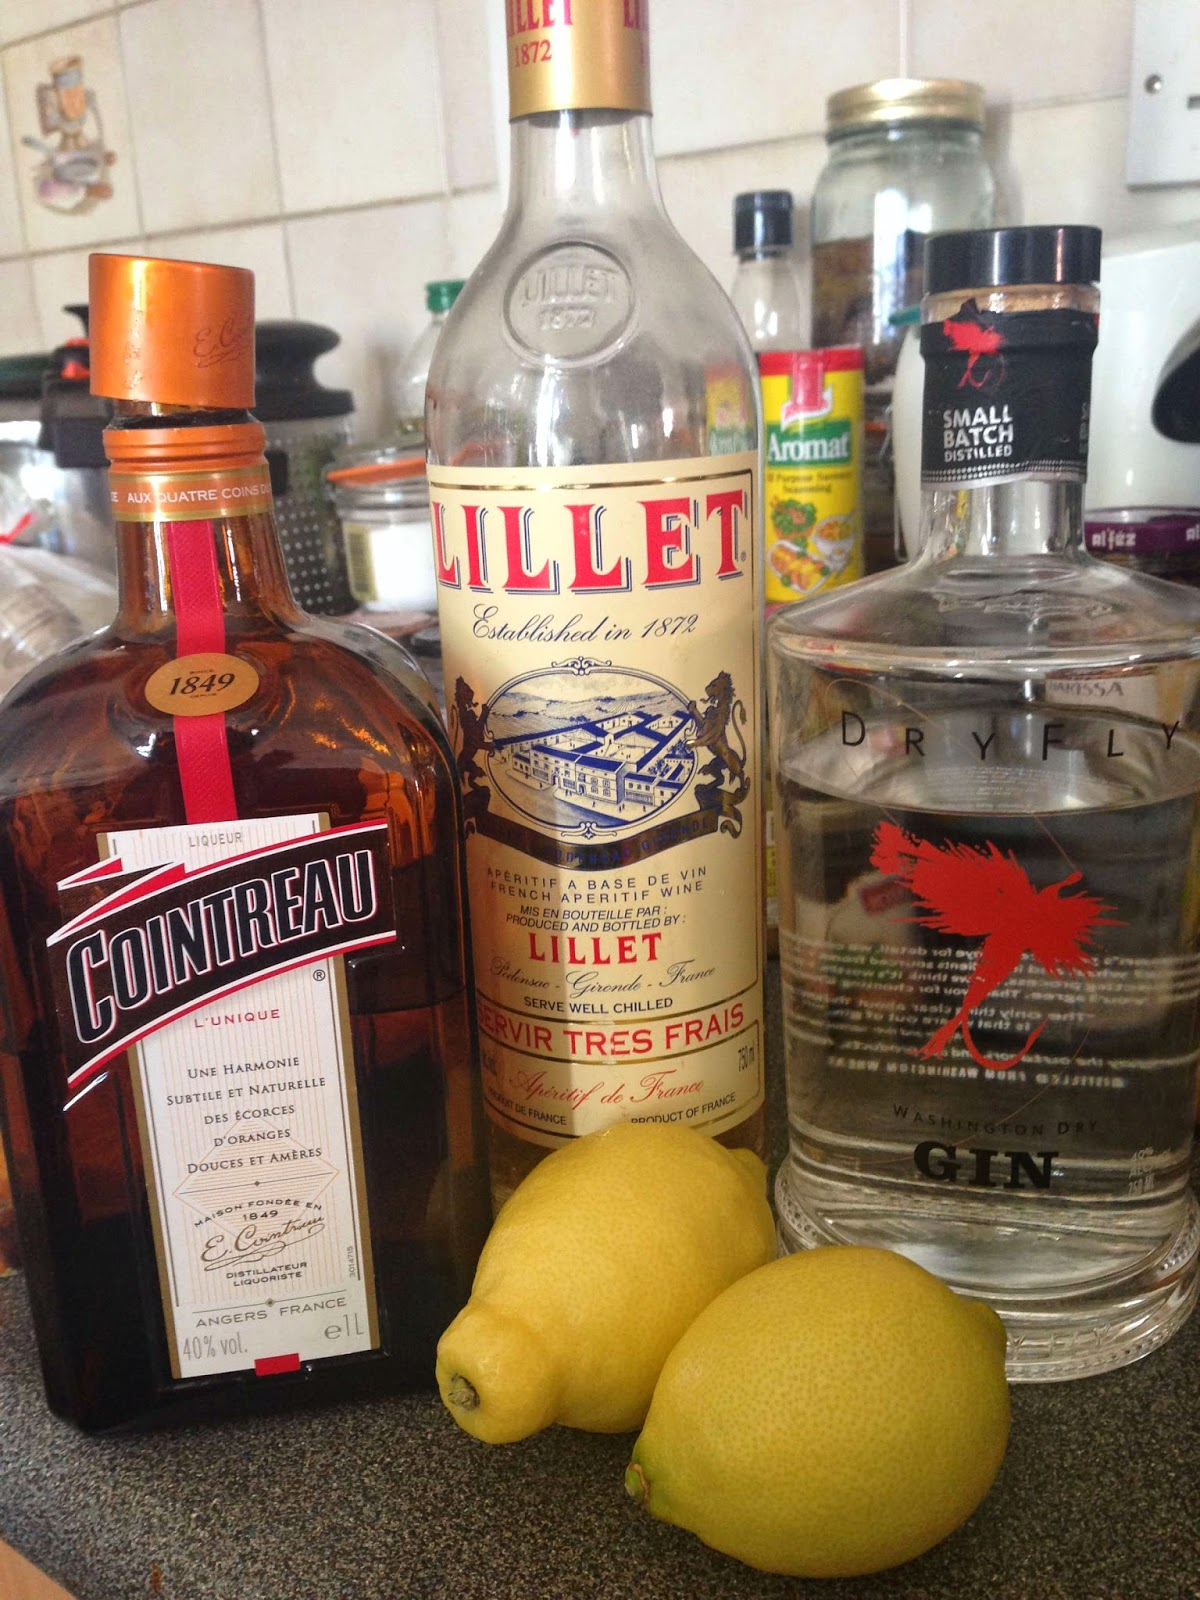 Stitch & Bear - Corpse Reviver #2 - Ingredients